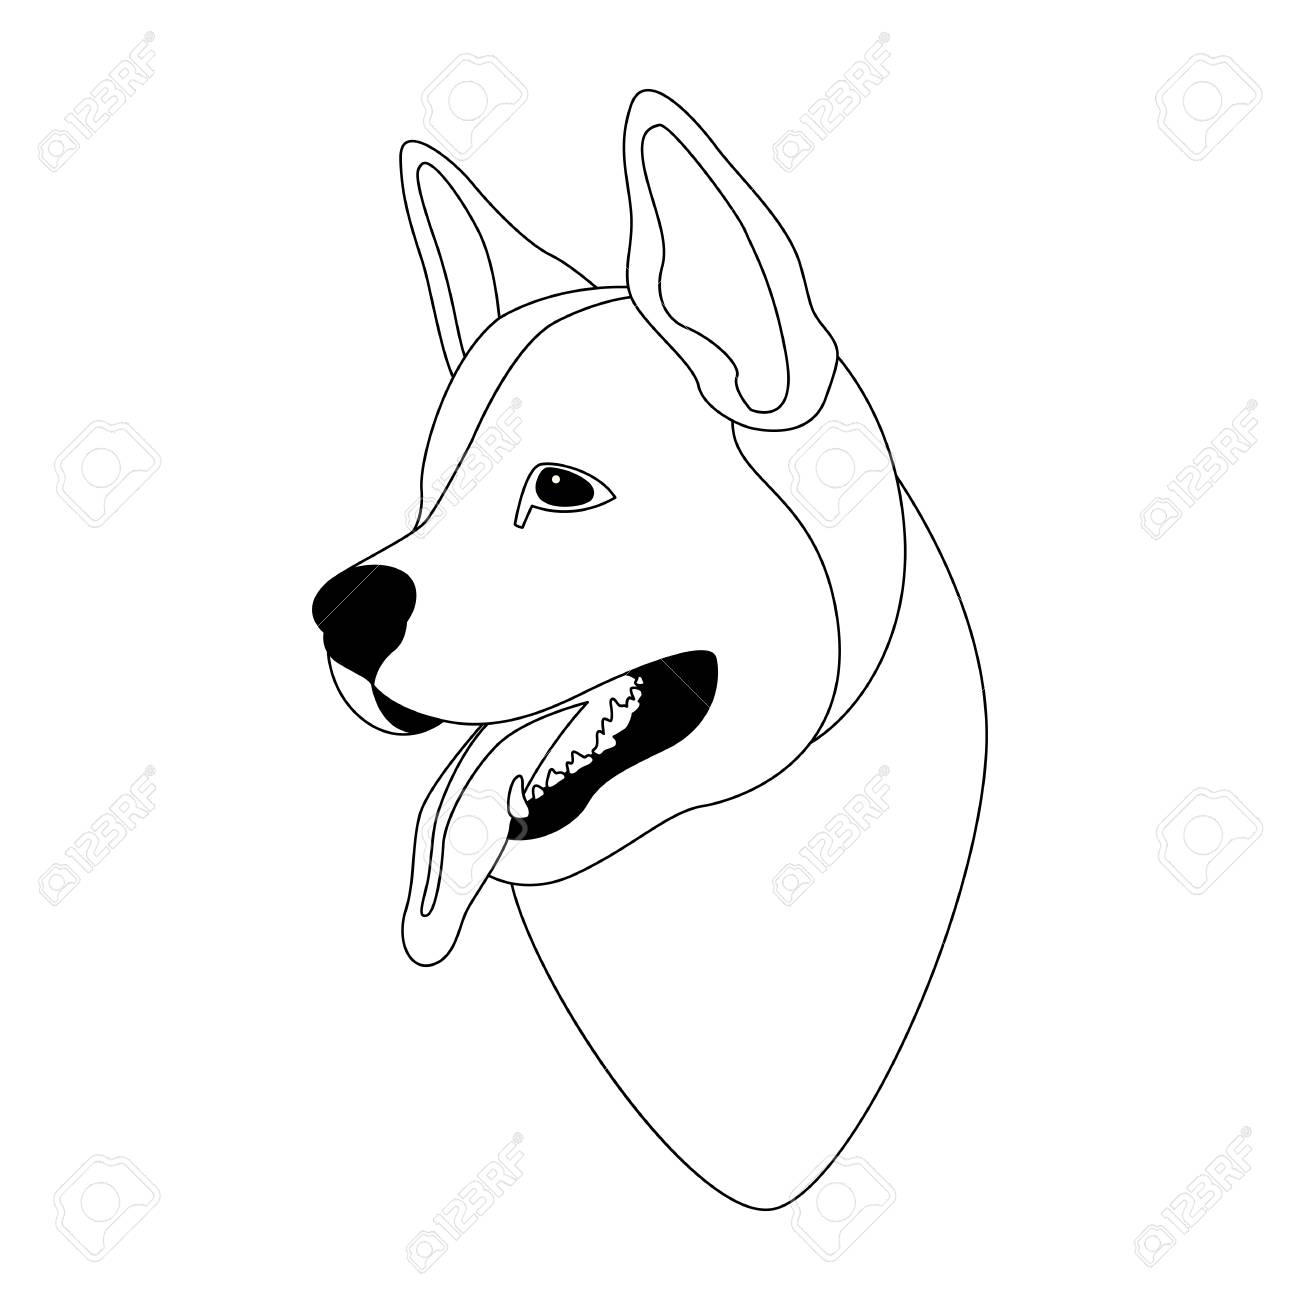 dog face drawing at getdrawings com free for personal use dog face